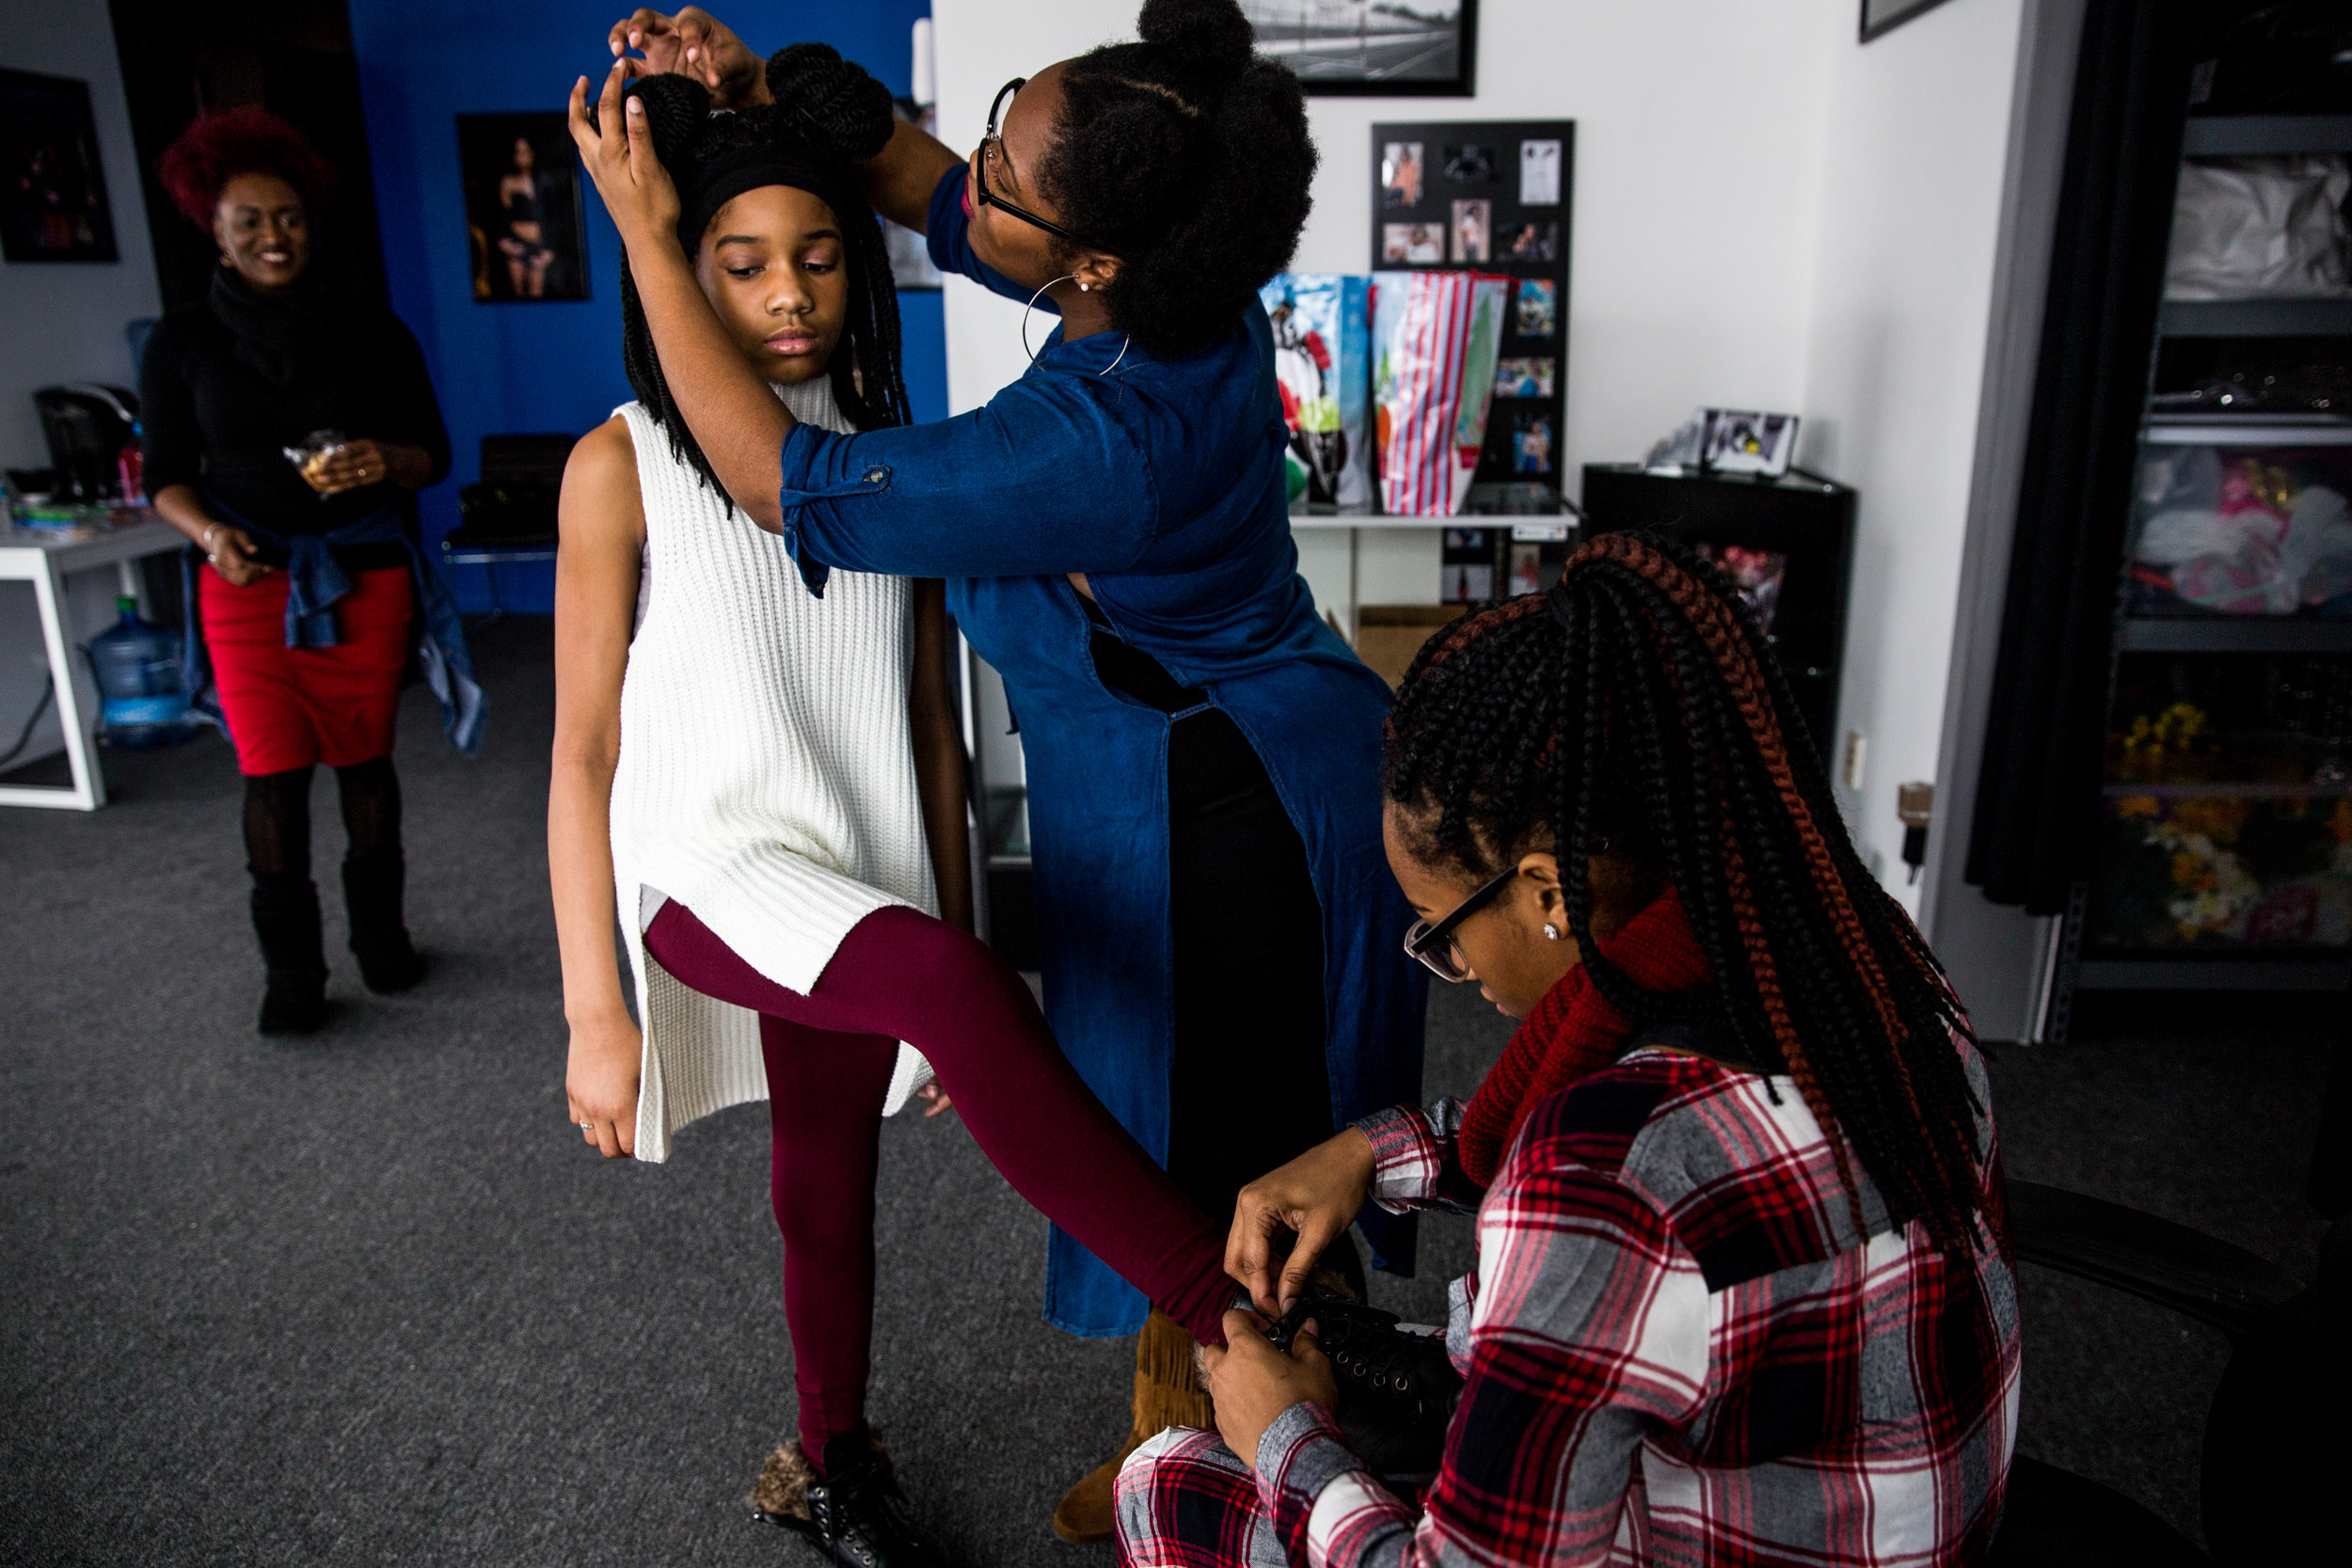 Tracy Palmer, of Flint, watches as her daughters Zahria Palmer, 17,and Myracle Palmer, 16, right, help Kaya Grair prepare for a professional photoshoot with photographer Donnell Carr on Saturday, Dec. 17, 2016 in Flint. Tracy Palmer, owner of Trendsetters Production, decided to help make Grair's wish to be a model come true.